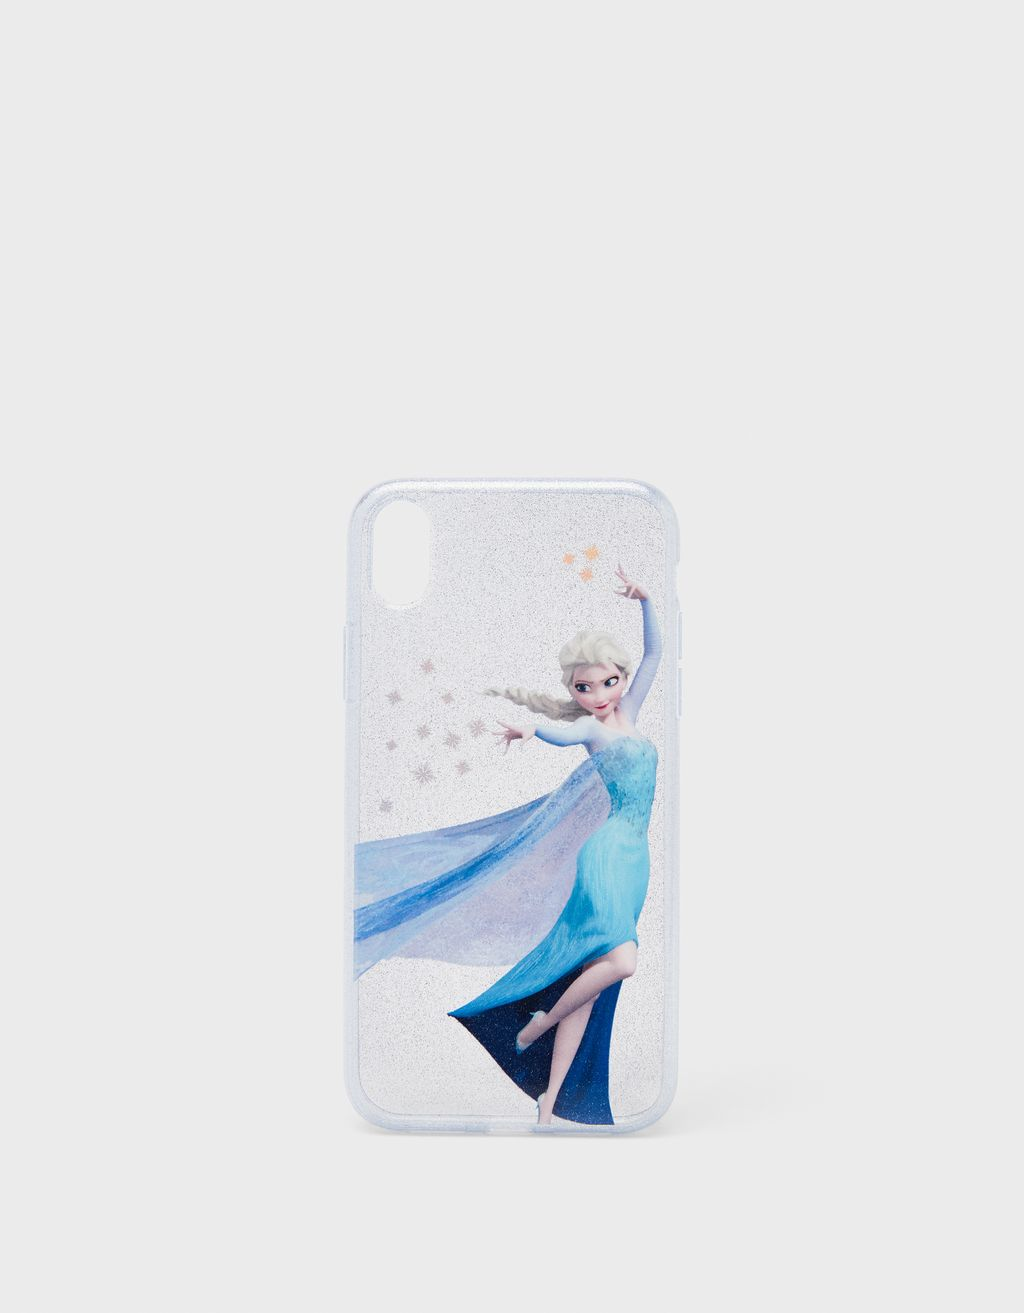 iPhone XR vāciņš 'Frozen'